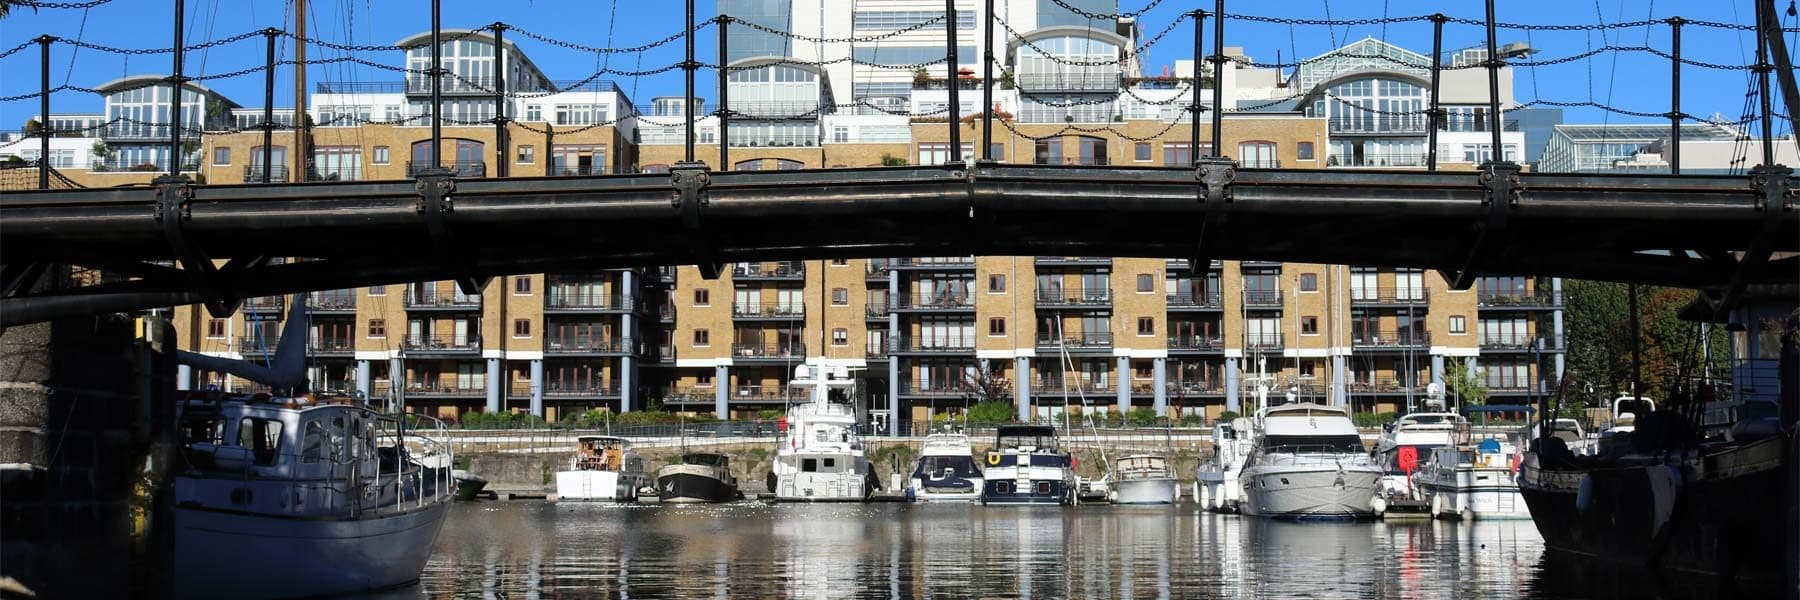 Telford Bridge, St. Katharine Docks